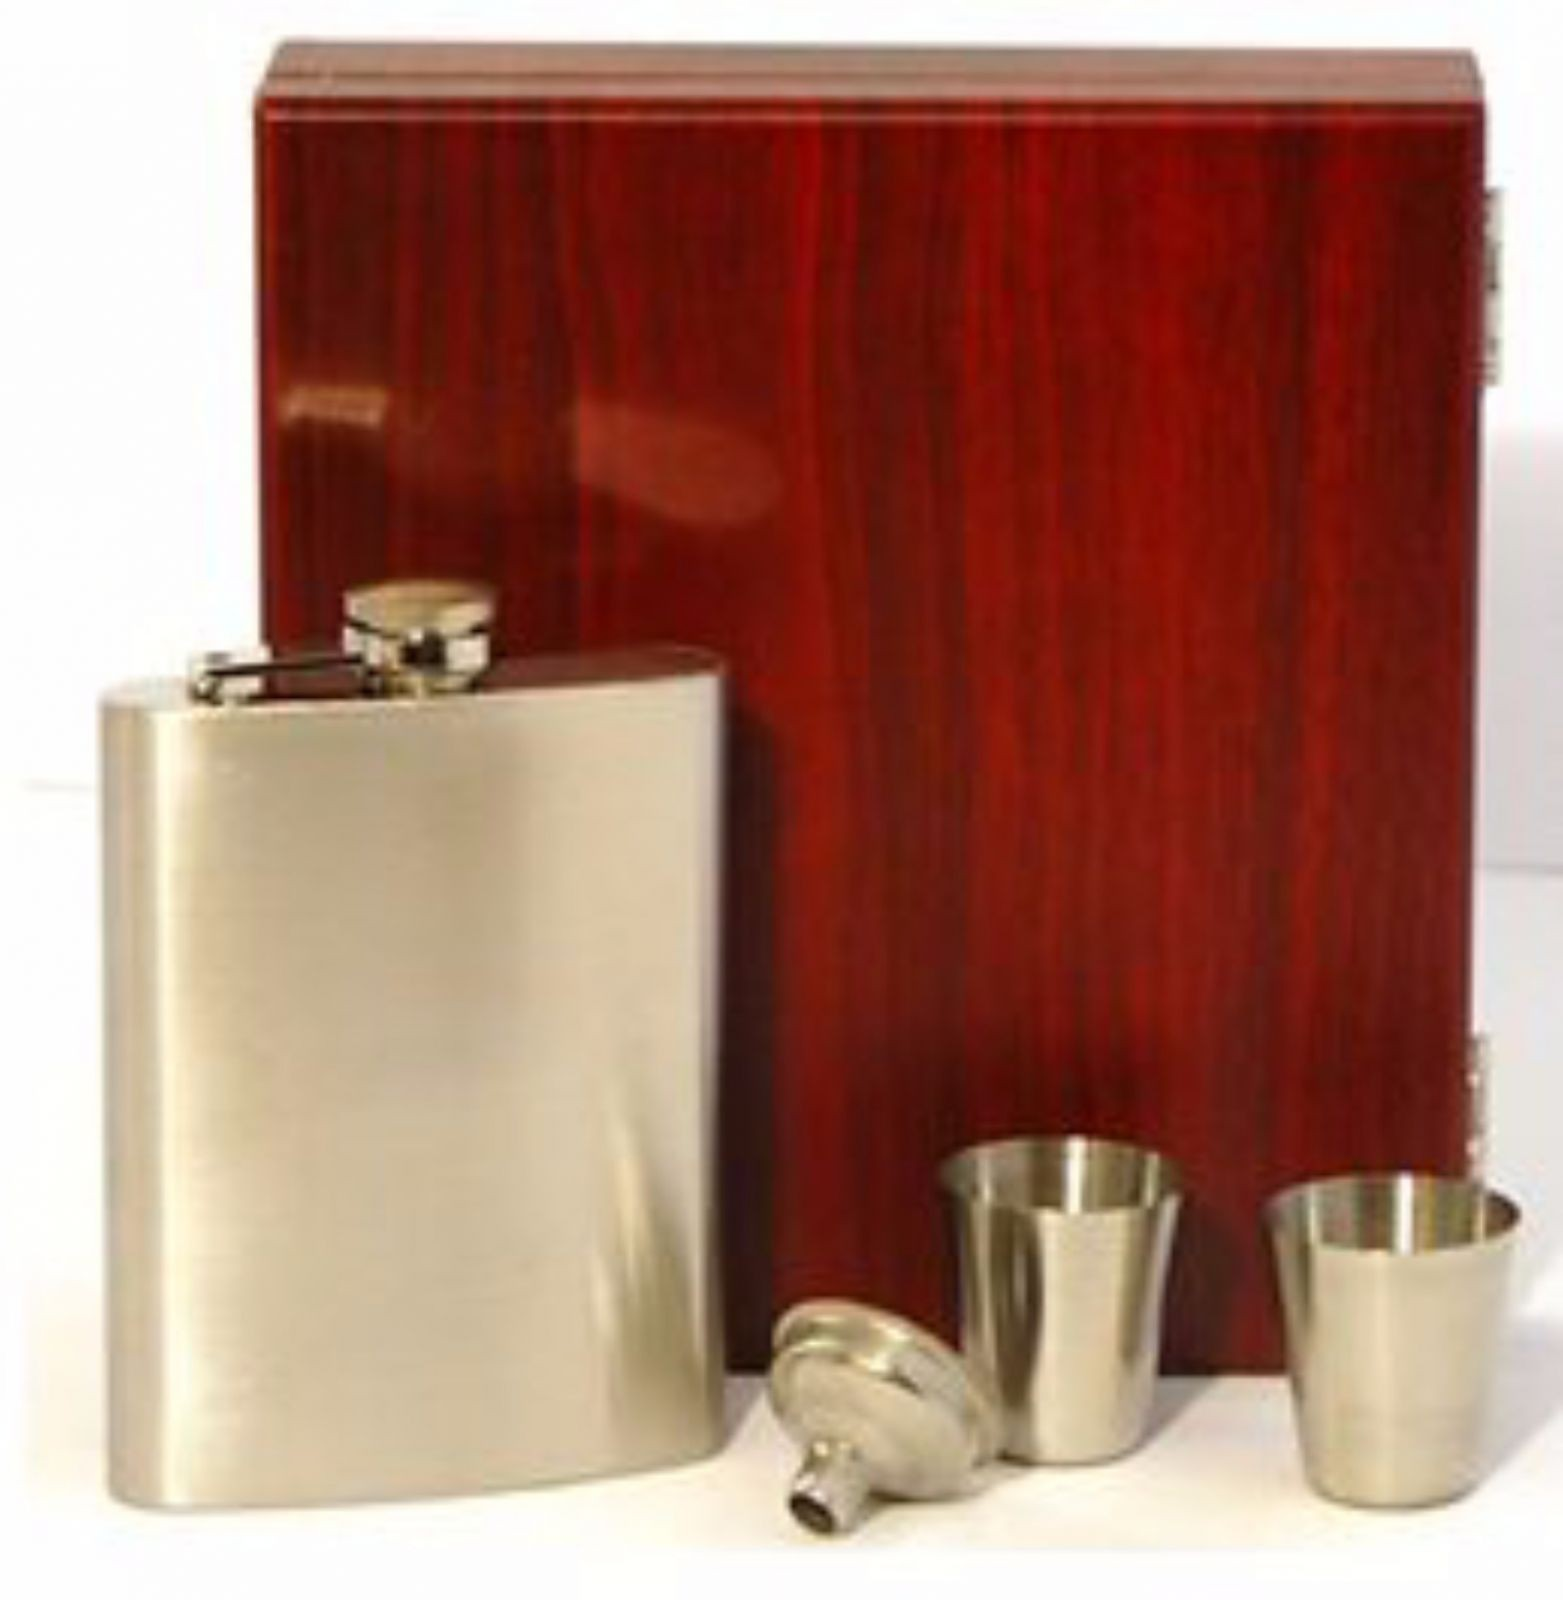 Engraved Stainless Steel Hip Flask Captive Lid 8oz Wooden Gift Box & Cups High Finish